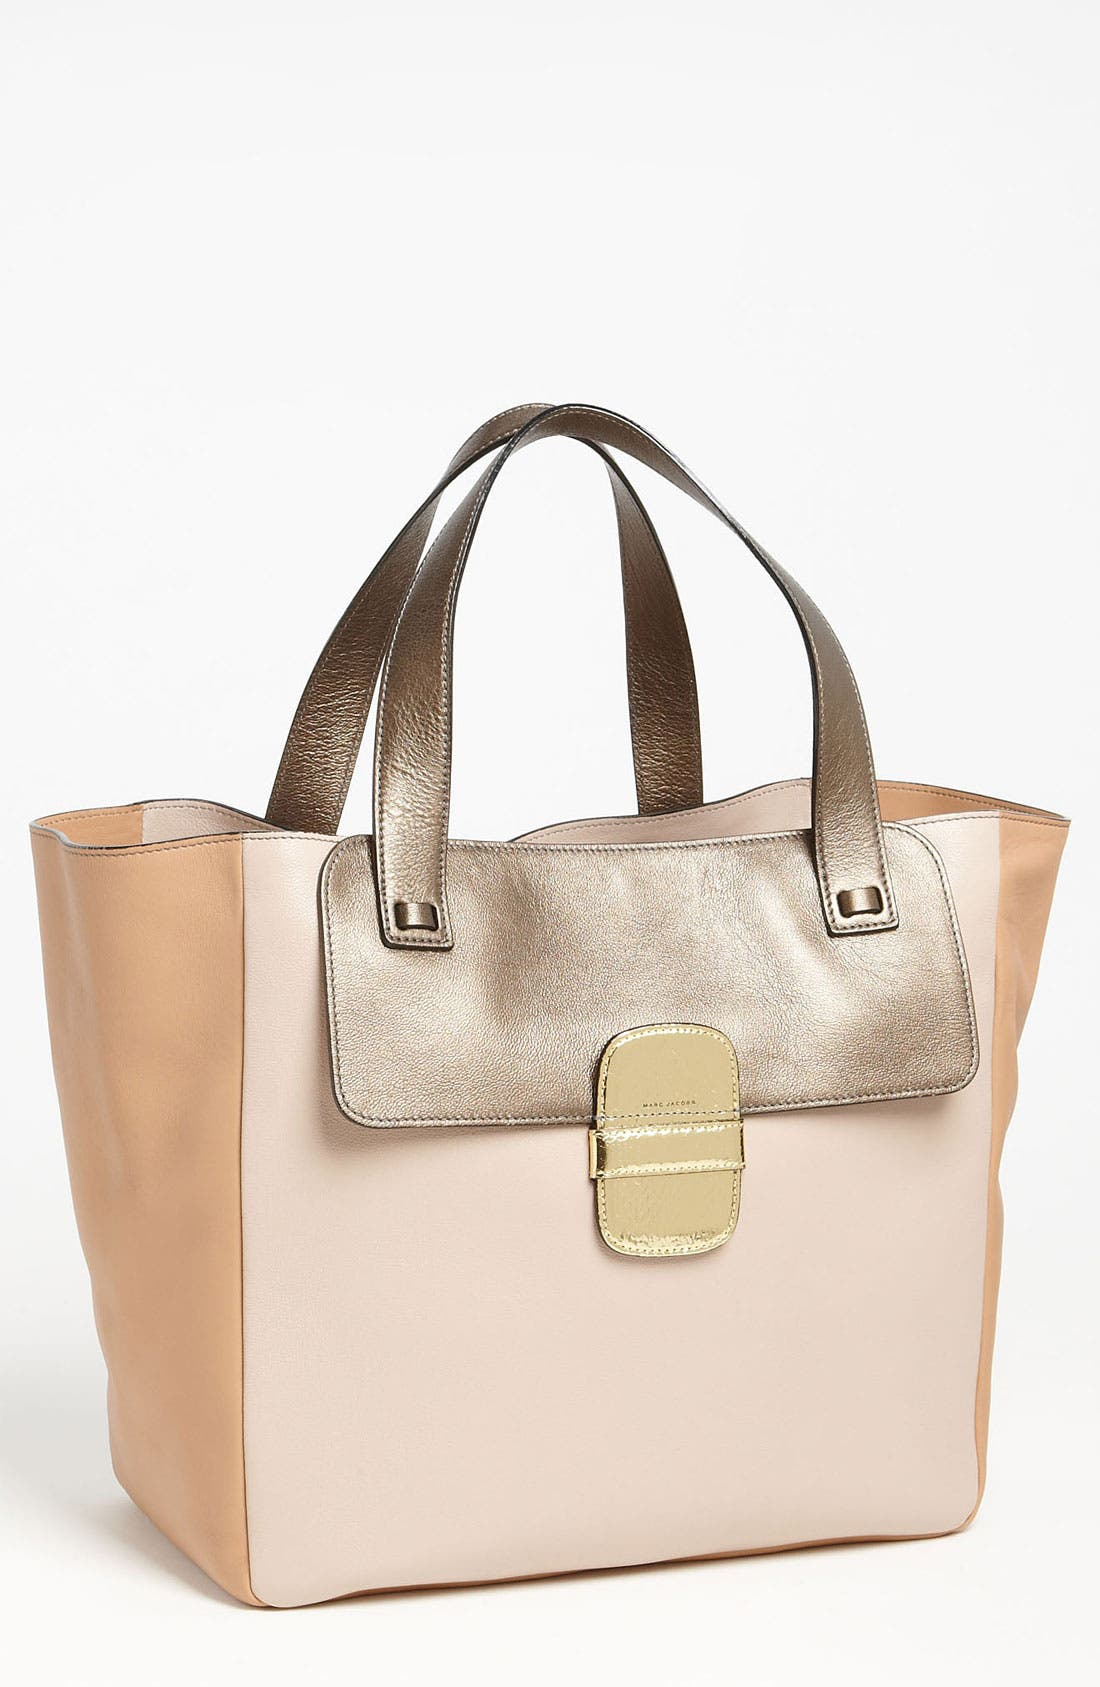 Alternate Image 1 Selected - MARC JACOBS 'Khaki' Tote